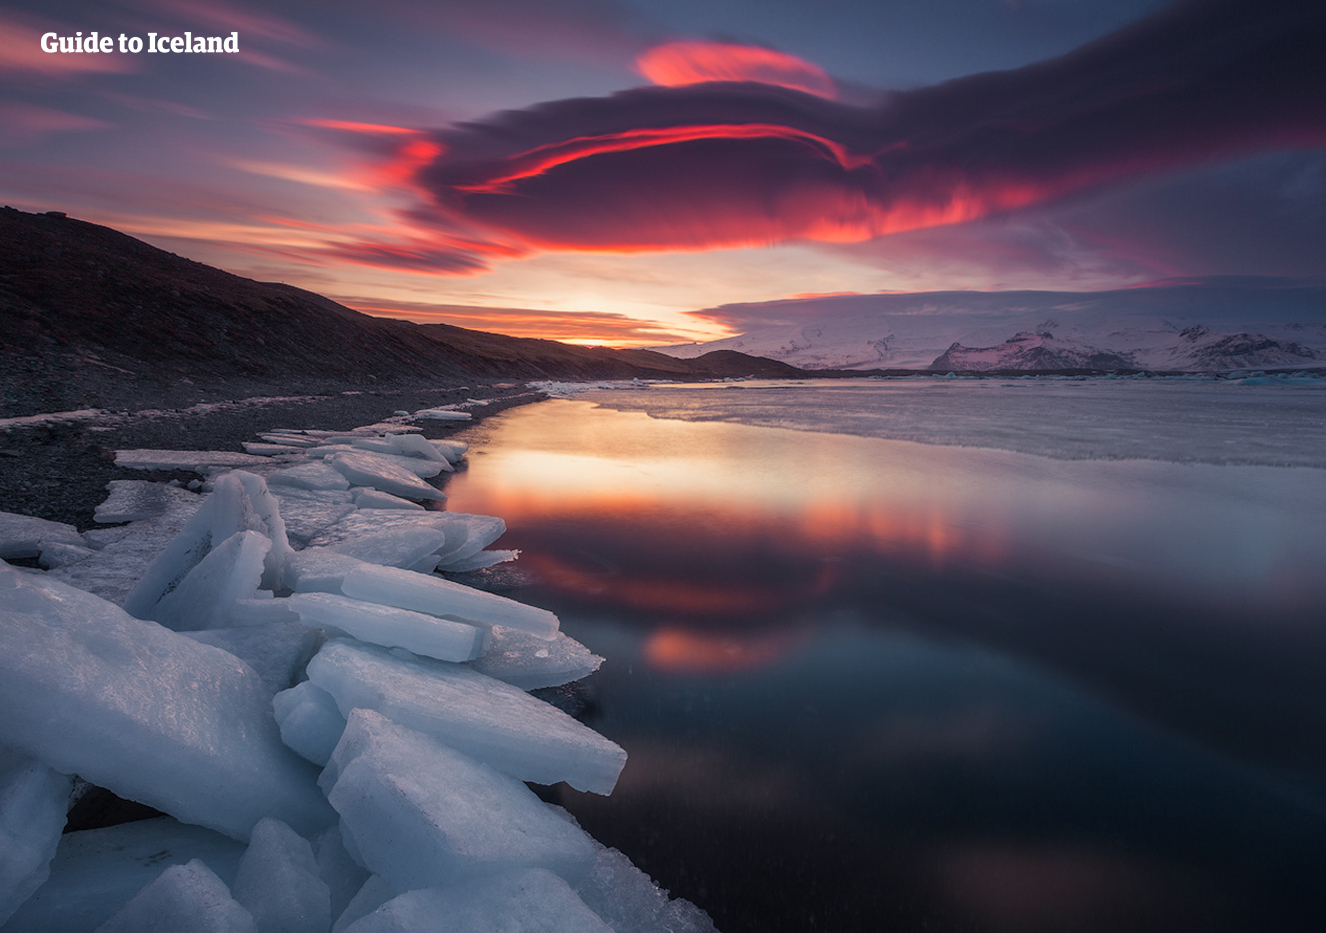 The red evening sky mirrored in the serene Jökulsárlón glacier lagoon.